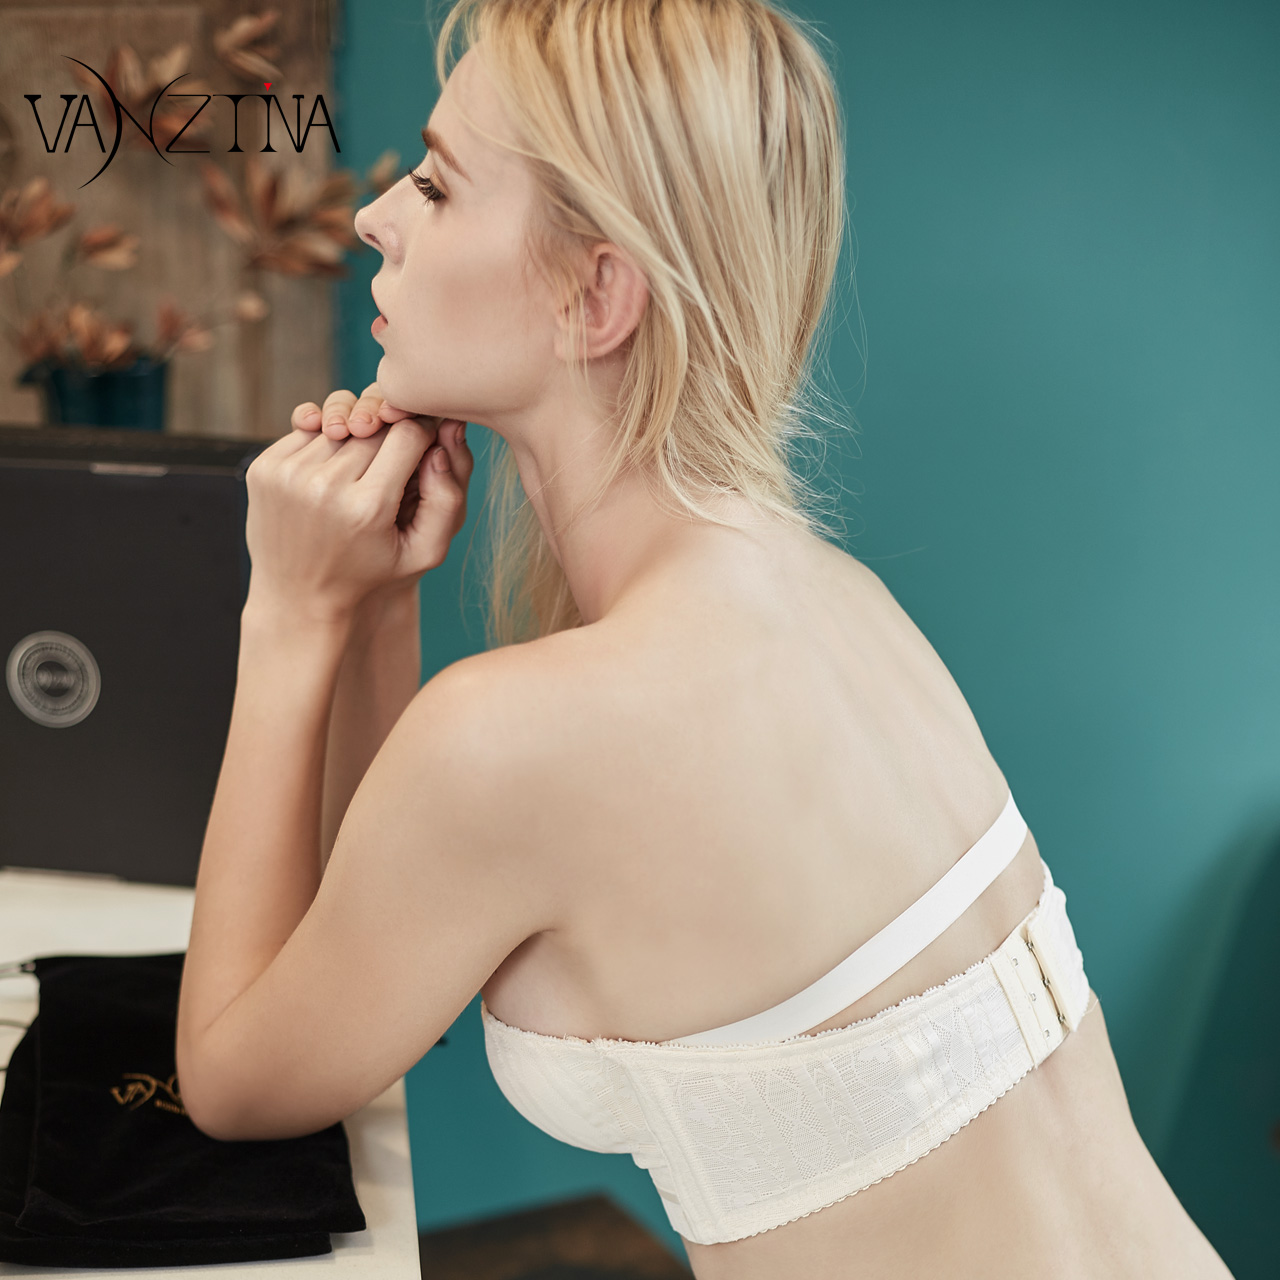 61e5a728d0 Strapless invisible underwear women gather non-slip upper support chest  stickers female wedding with small chest tube top without steel ring bra ...